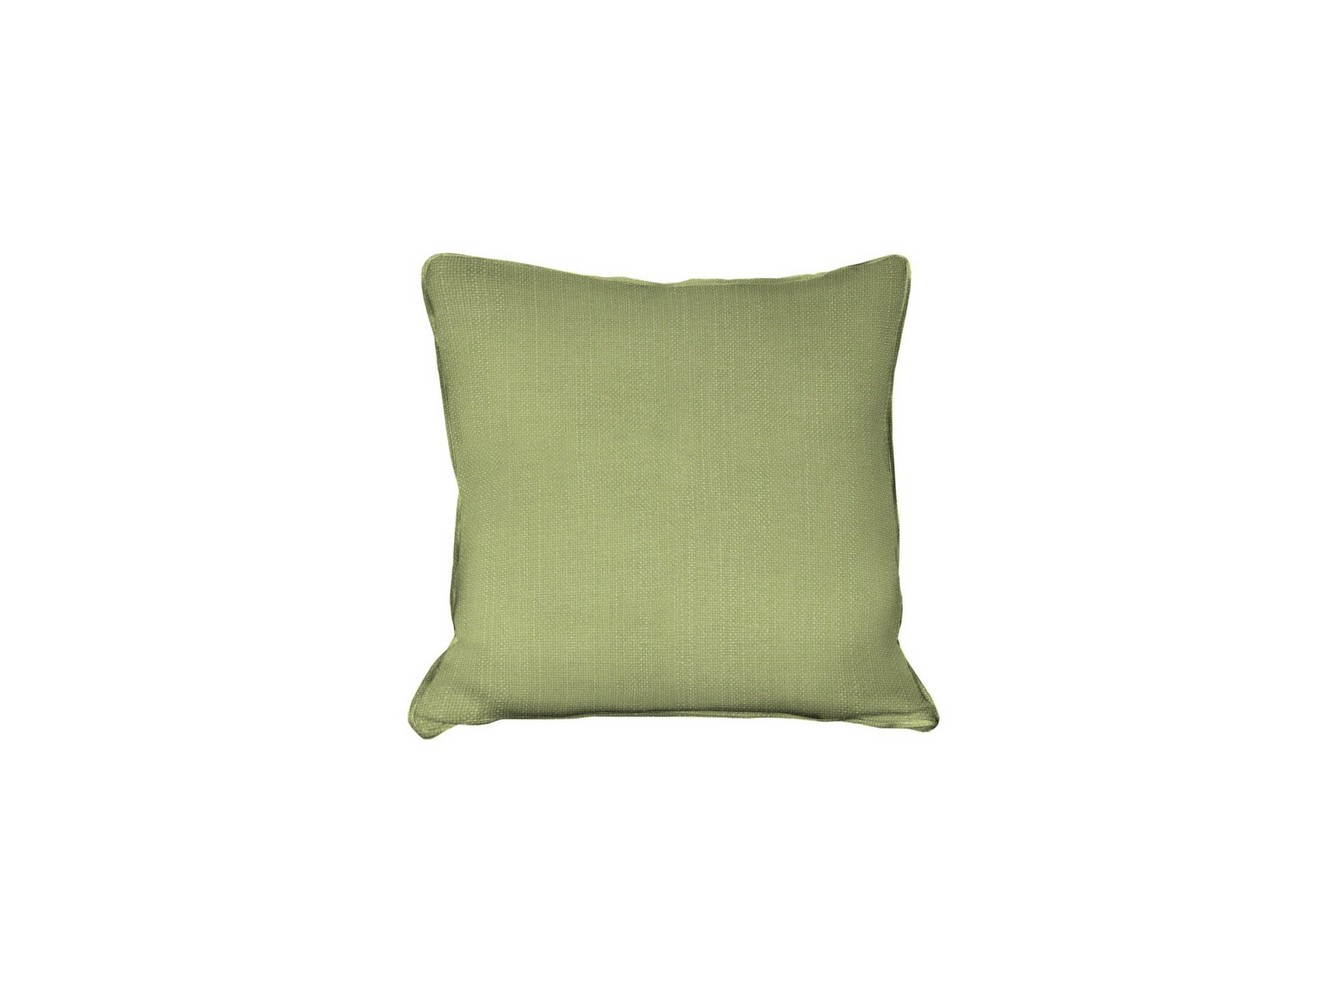 Extra Scatter Cushions - Fabric Pistachio